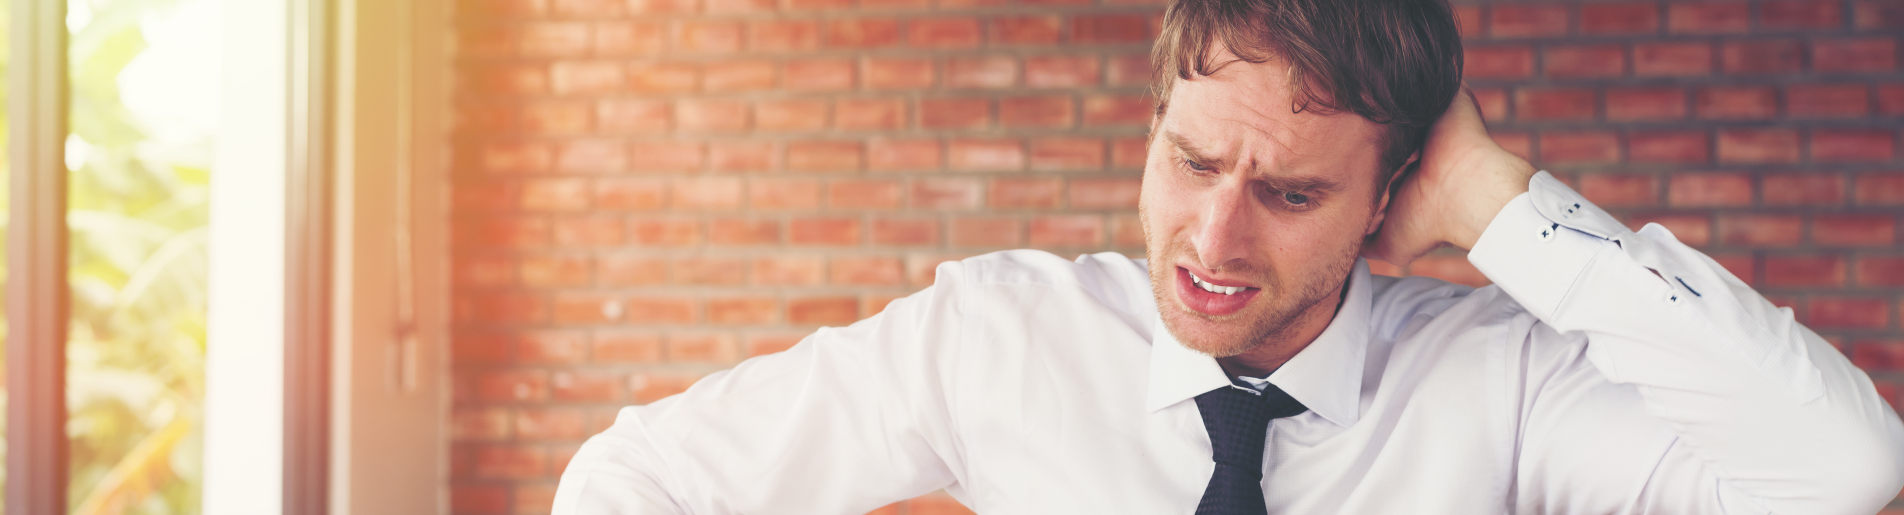 Human Error accounts for many mistakes - a man looks flustered